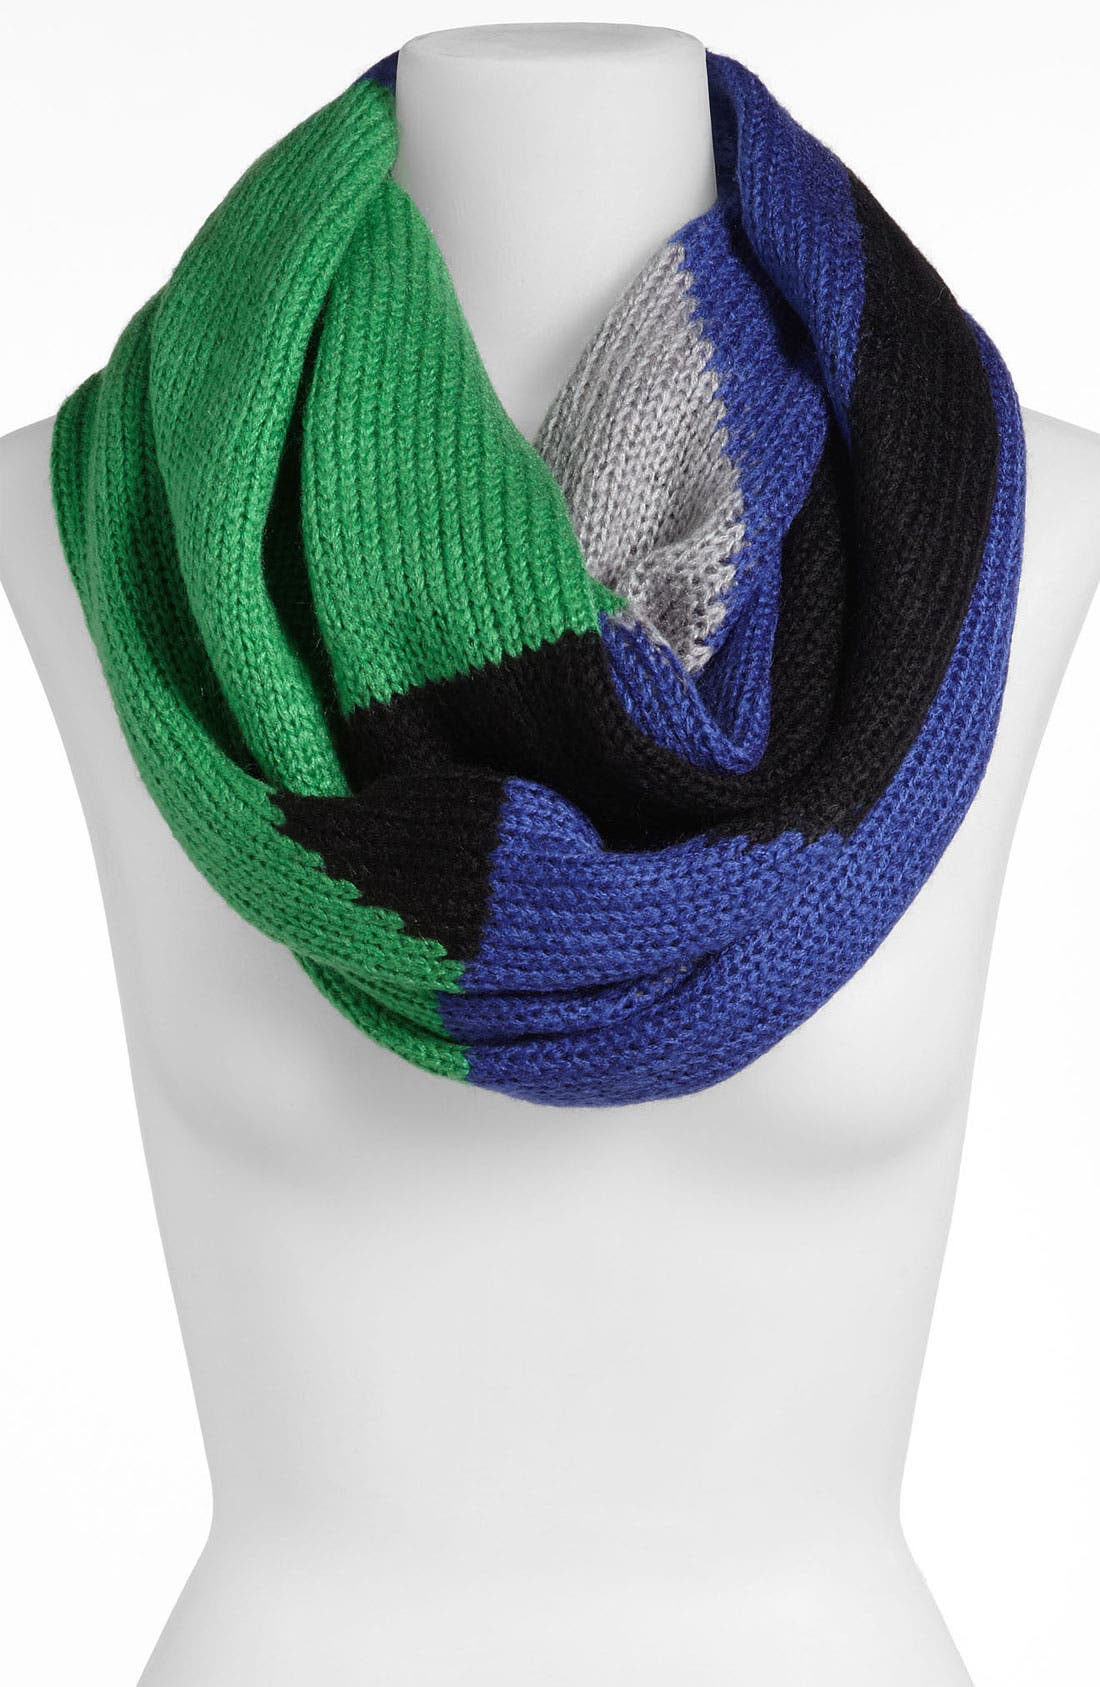 Main Image - Steve Madden 'Block Party' Infinity Scarf